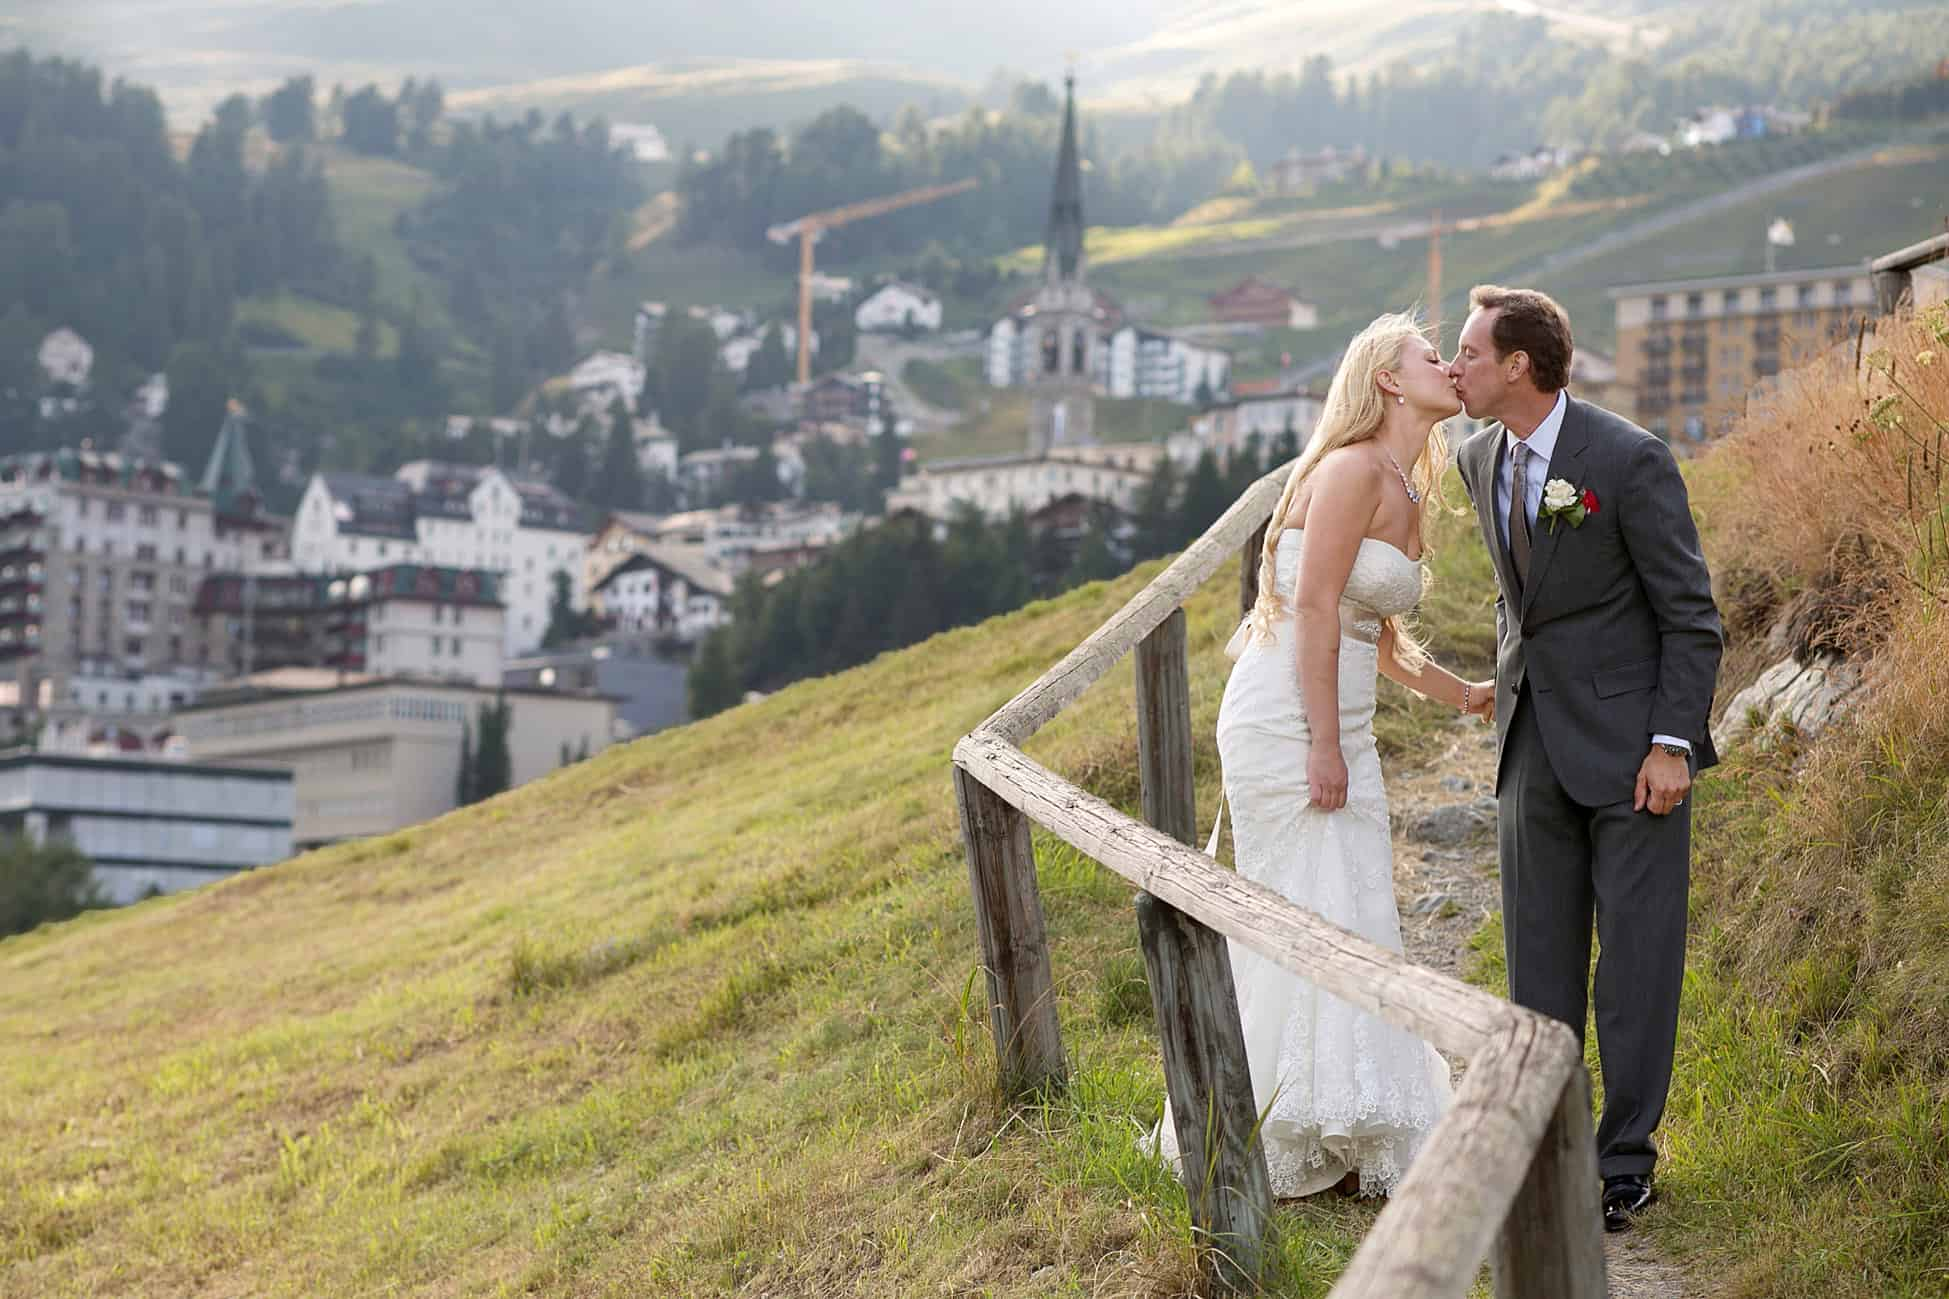 Couple kiss as they walk down gravel path near St. Moritz in the Swiss Alps, photographed by destination wedding photographer in Europe.